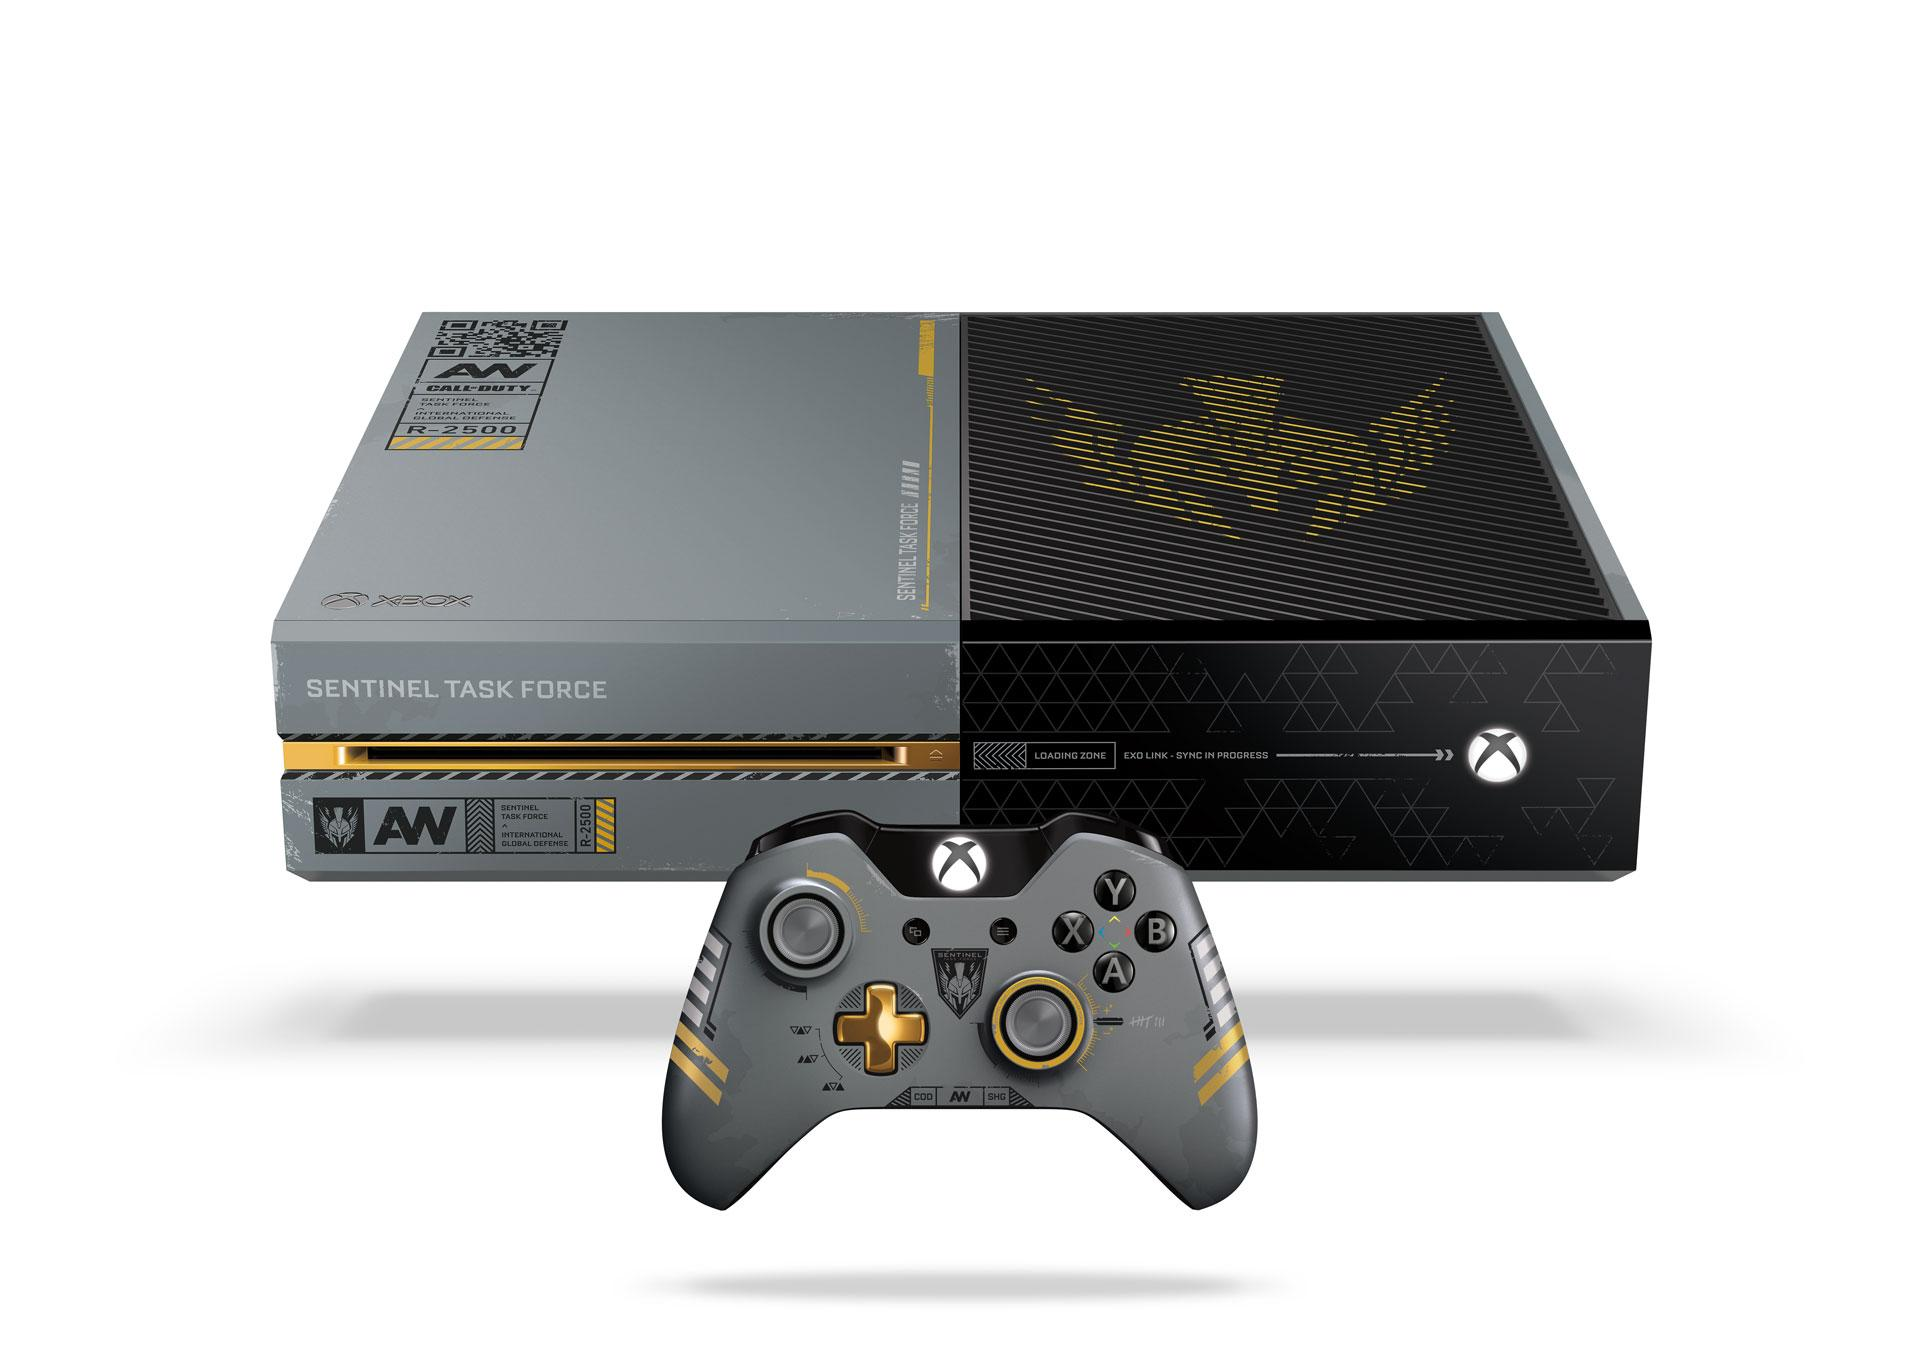 Call-of-Duty-Advanced-Warfare-Xbox-One-console